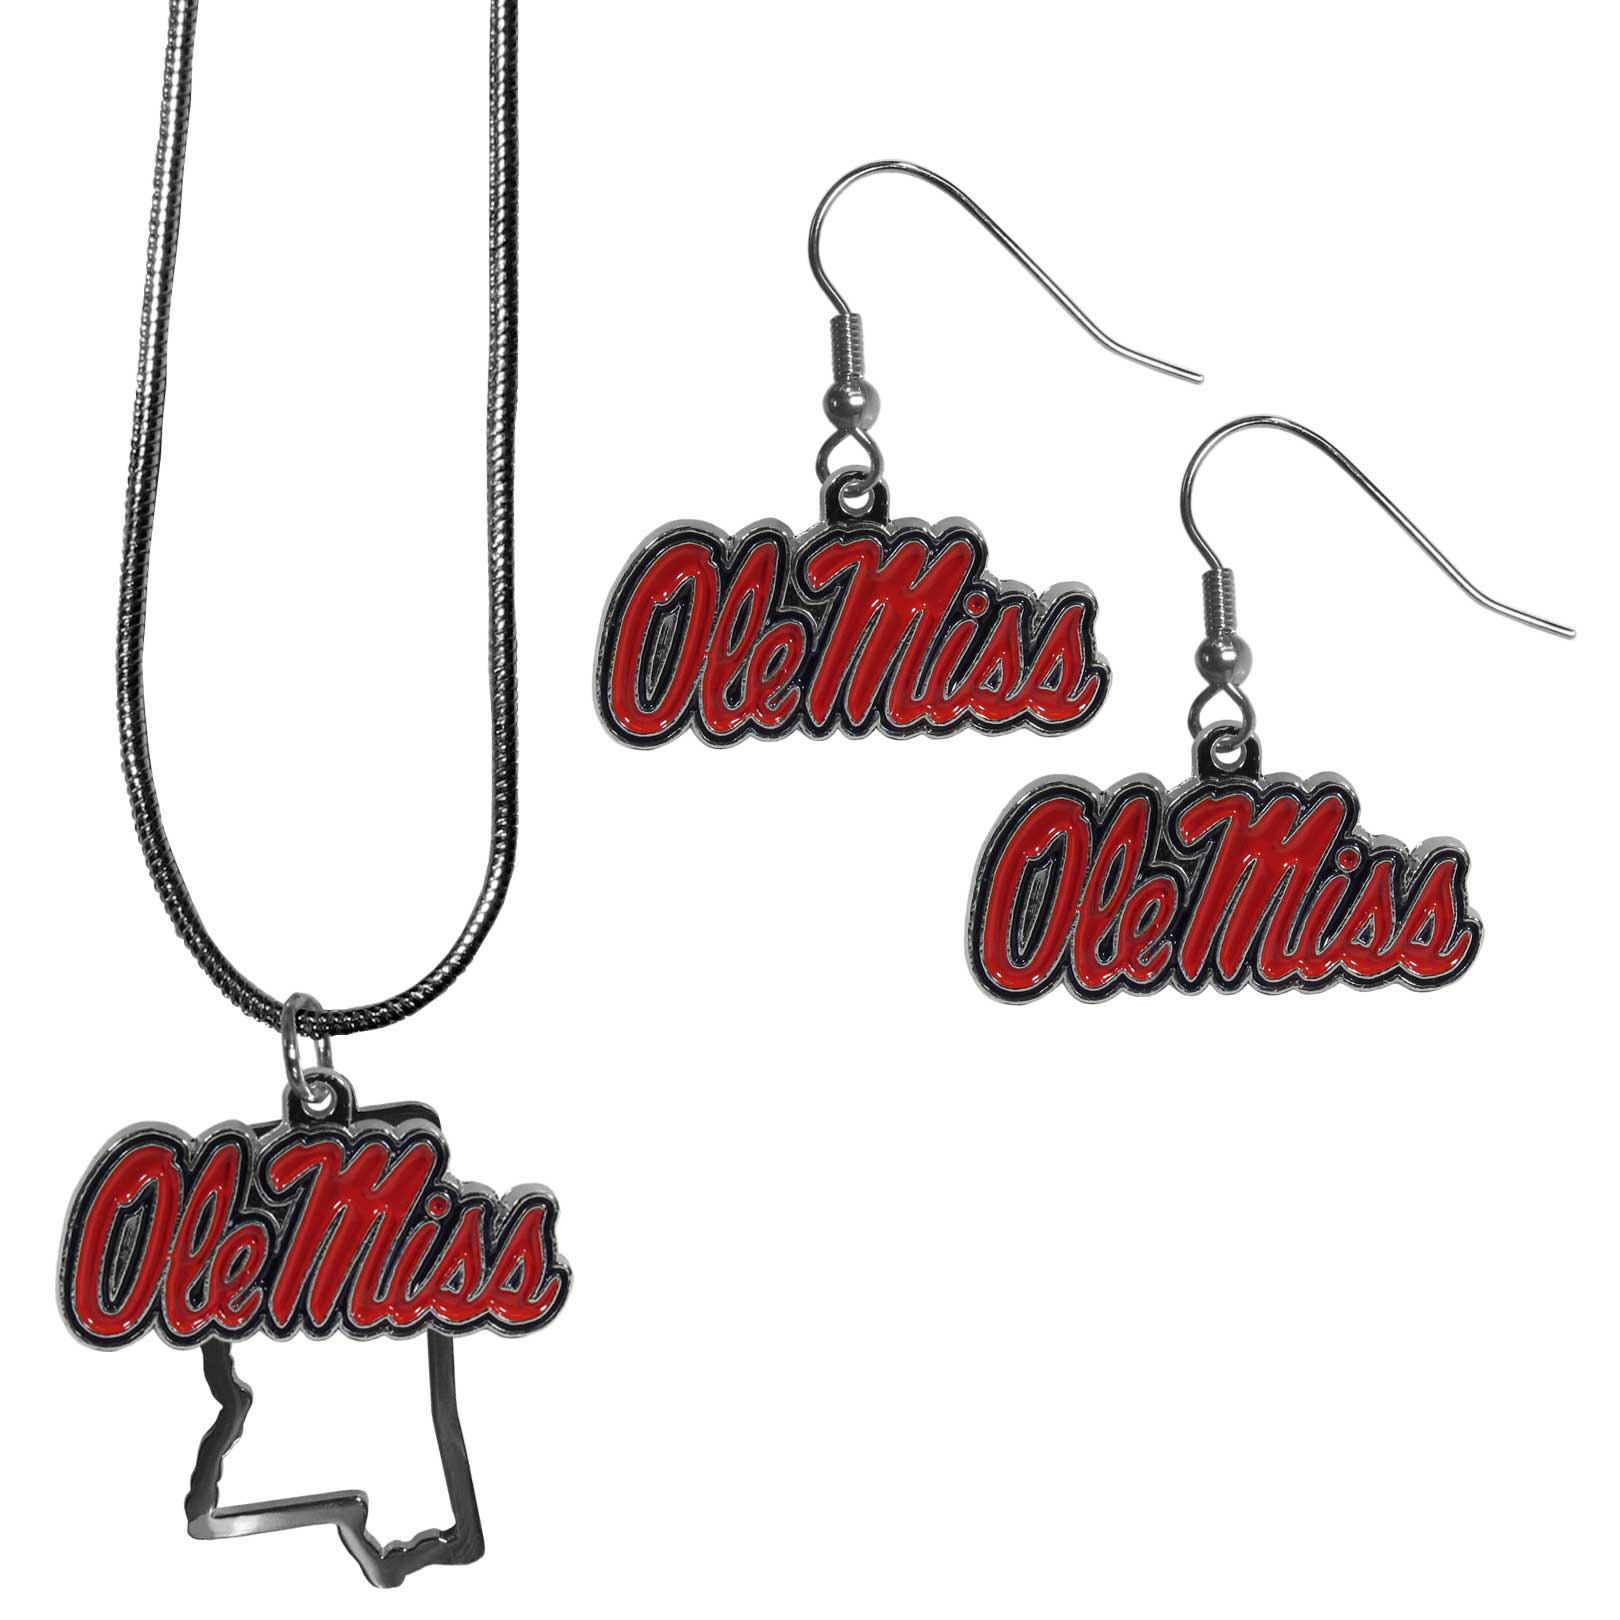 Mississippi Rebels Dangle Earrings and State Necklace Set - Get in on the trend! State themes are a trend that just keeps getting more popular and this jewelry set takes the state style and give it a sporty twist with a Mississippi Rebels necklace that features an Arizona state outline charm paired with a beautiful team charm and matching team charm dangle earrings. The earrings feature hypoallergenic fishhook posts that are nickel free.